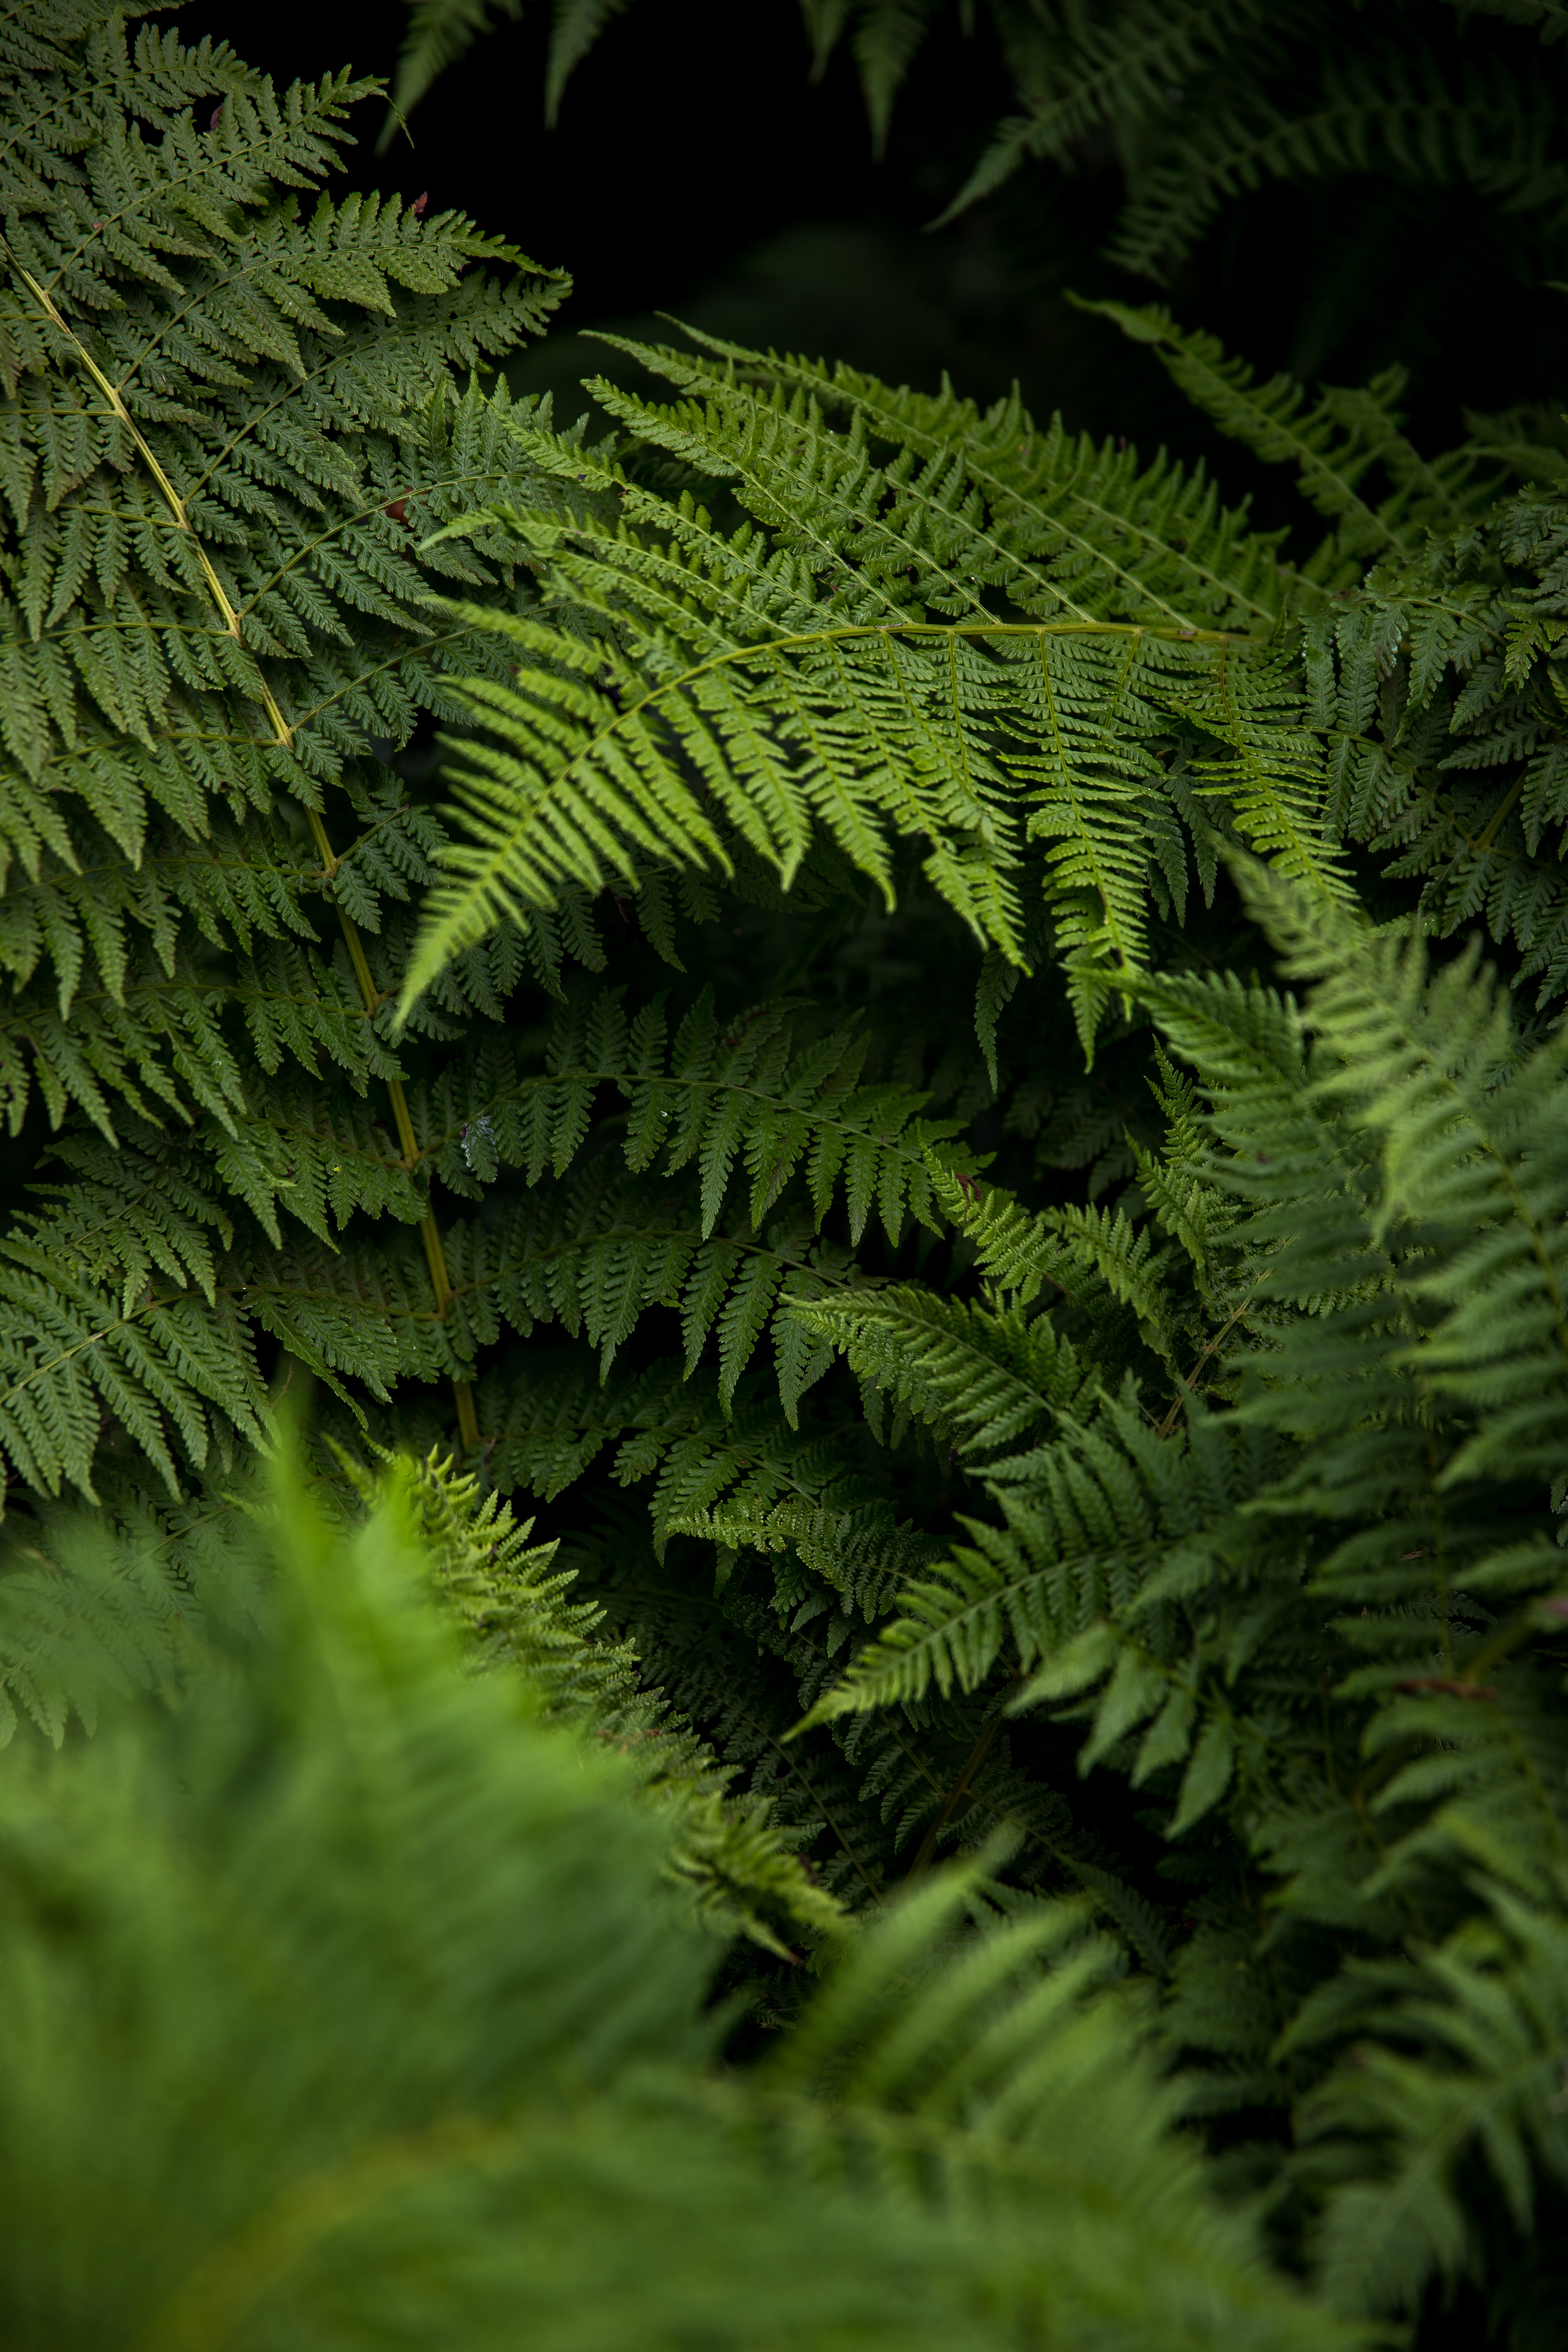 low light photography of fern plant